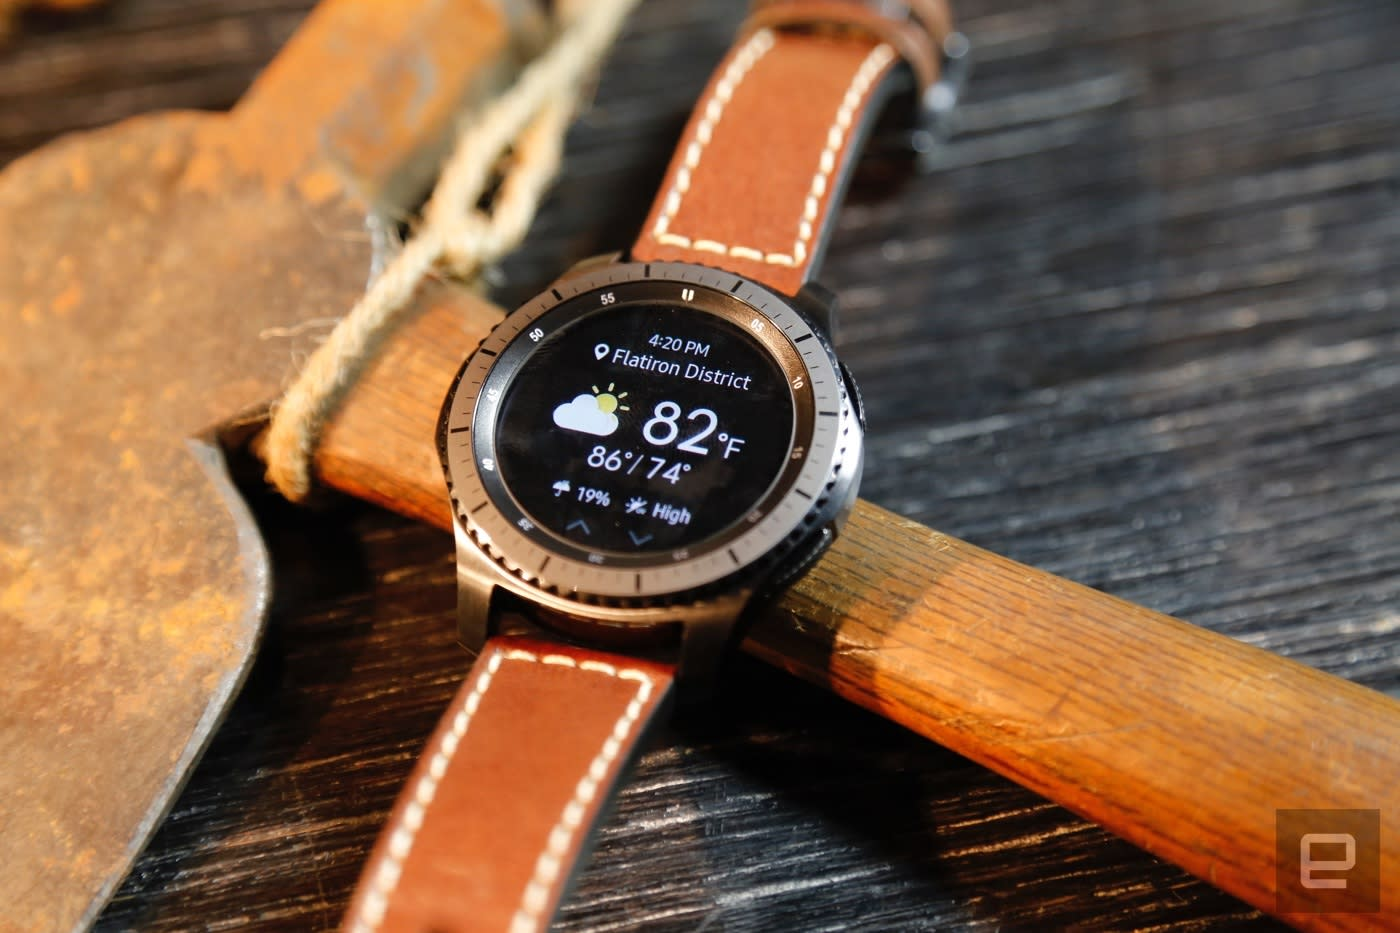 Samsung Pay on the Gear S3 works with any Android smartphone